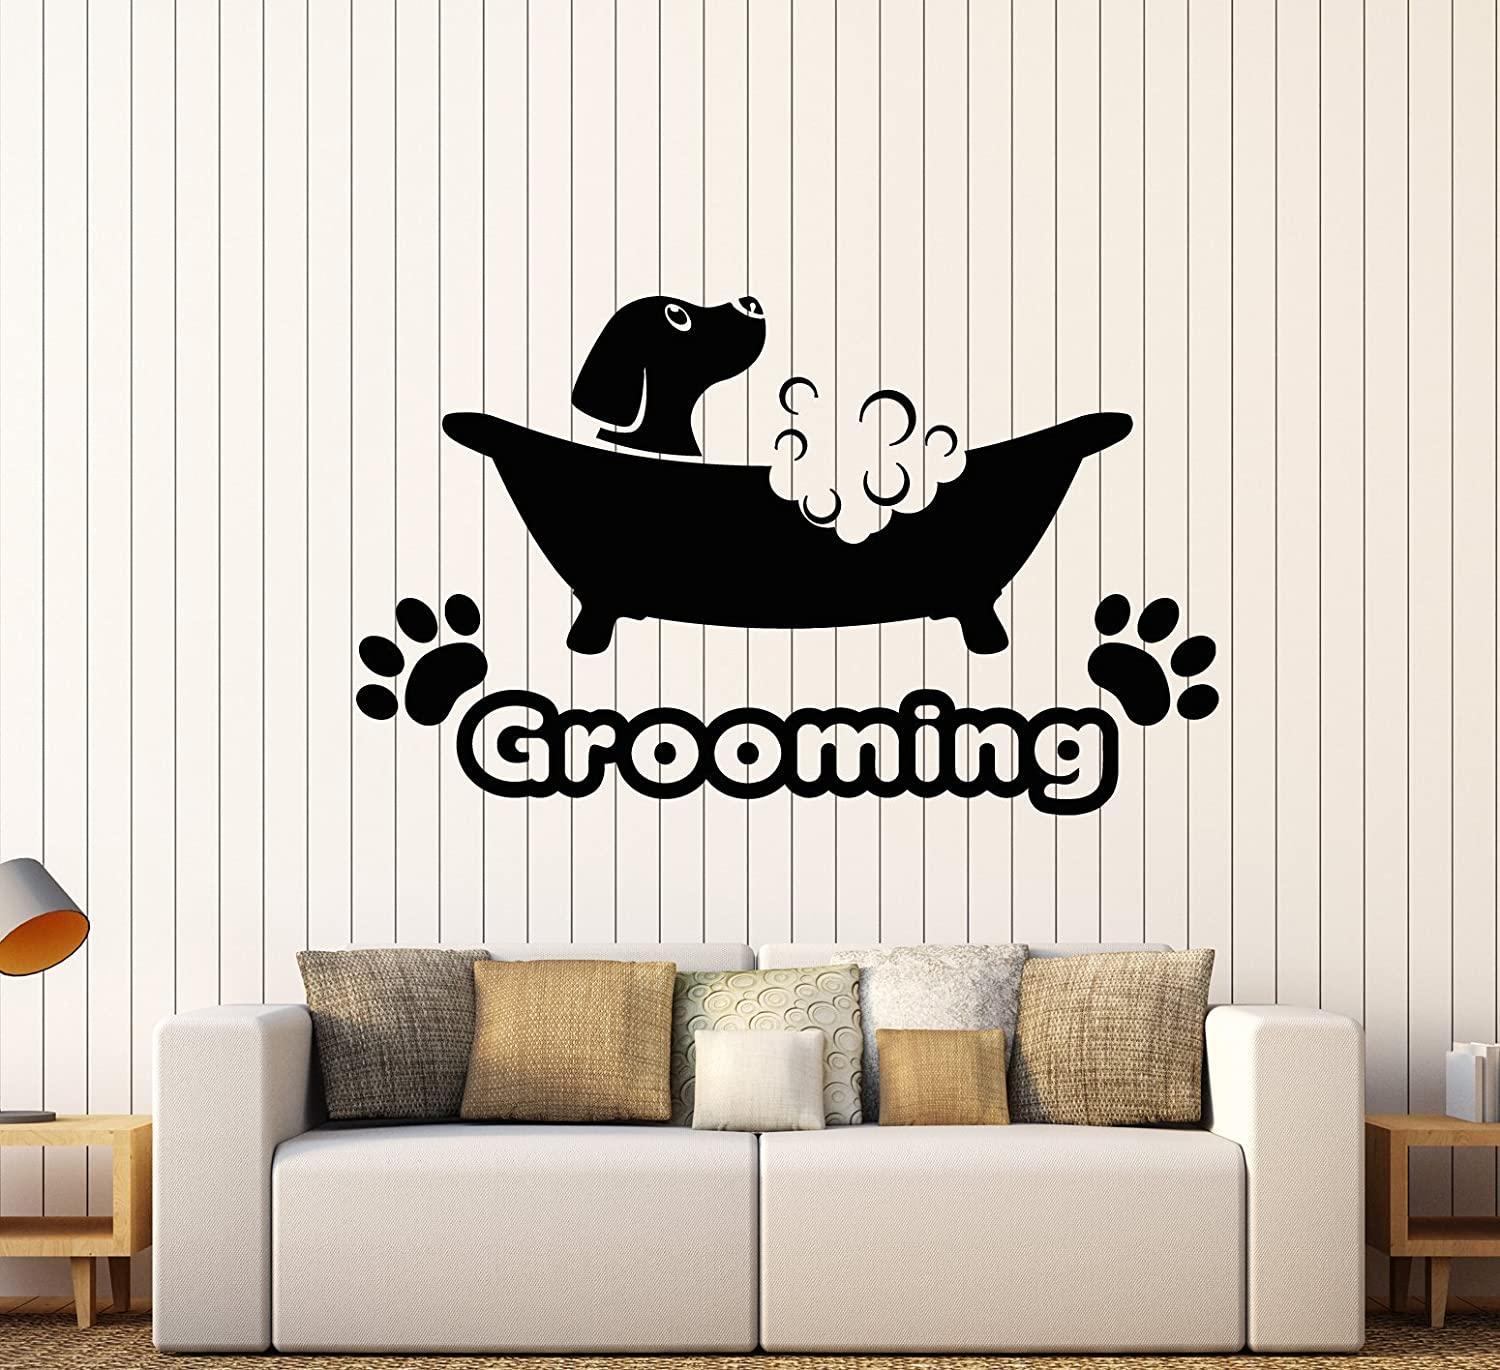 Vinyl Wall Decal Pets Beauty Salon Grooming Dog Puppy Bath Stickers Large  Decor (1746ig) Black